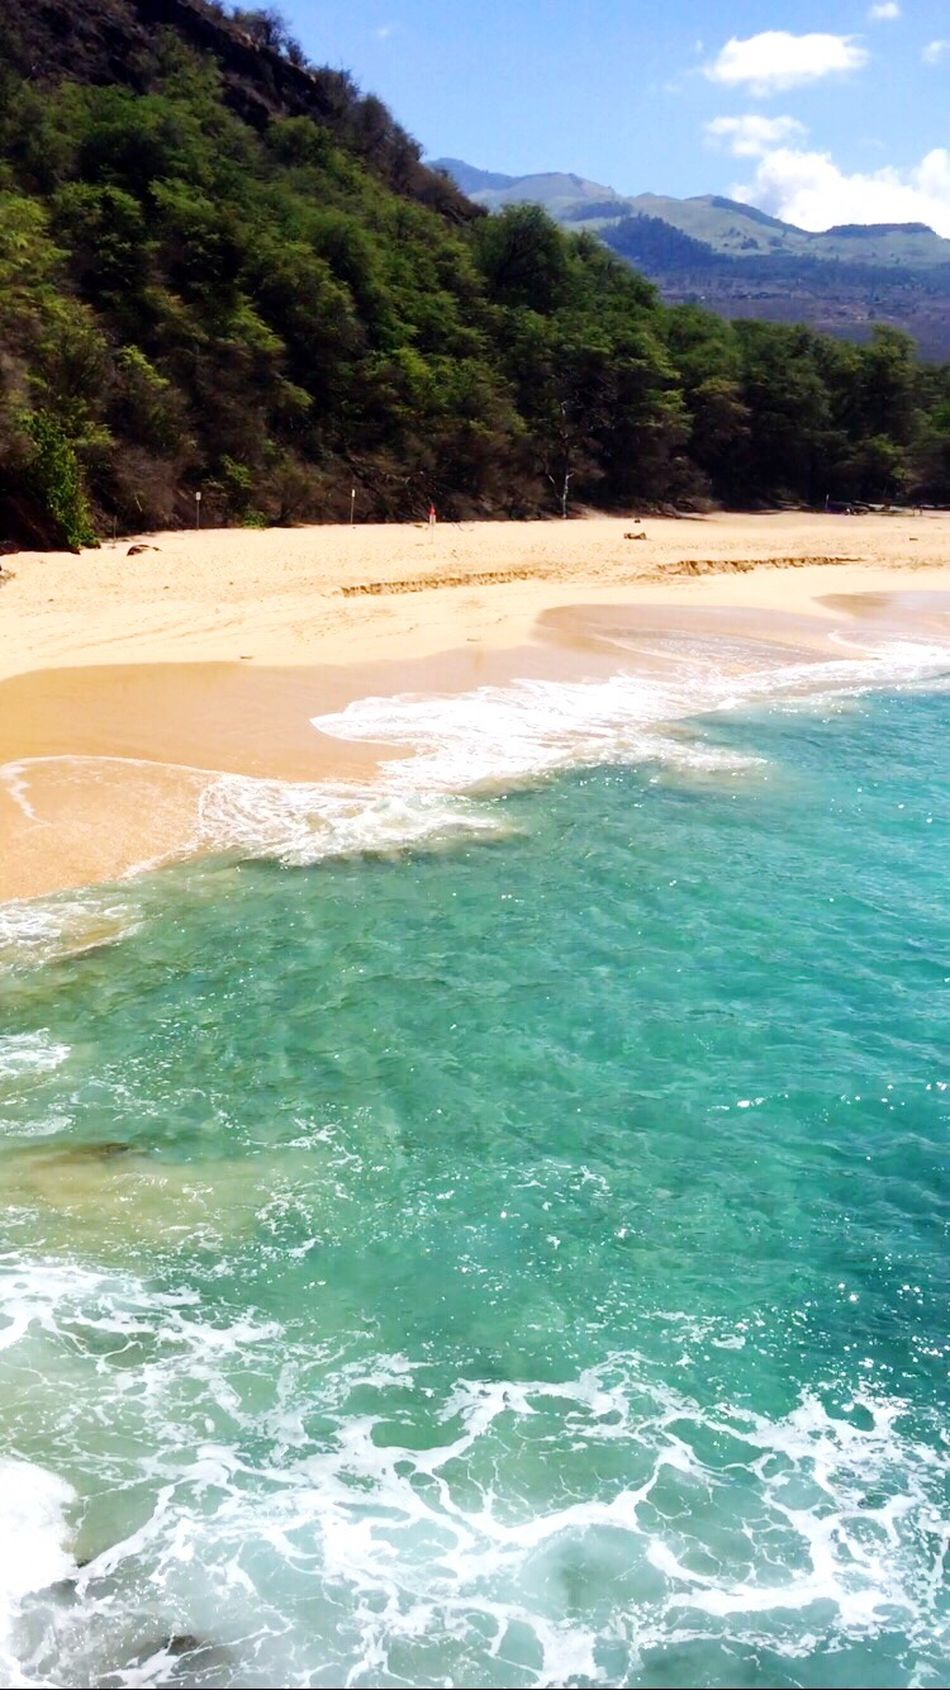 The most magical beach out there✨🐚 Clarity Clear Glass Magical Bigbeach Aqua Dreamy Maui